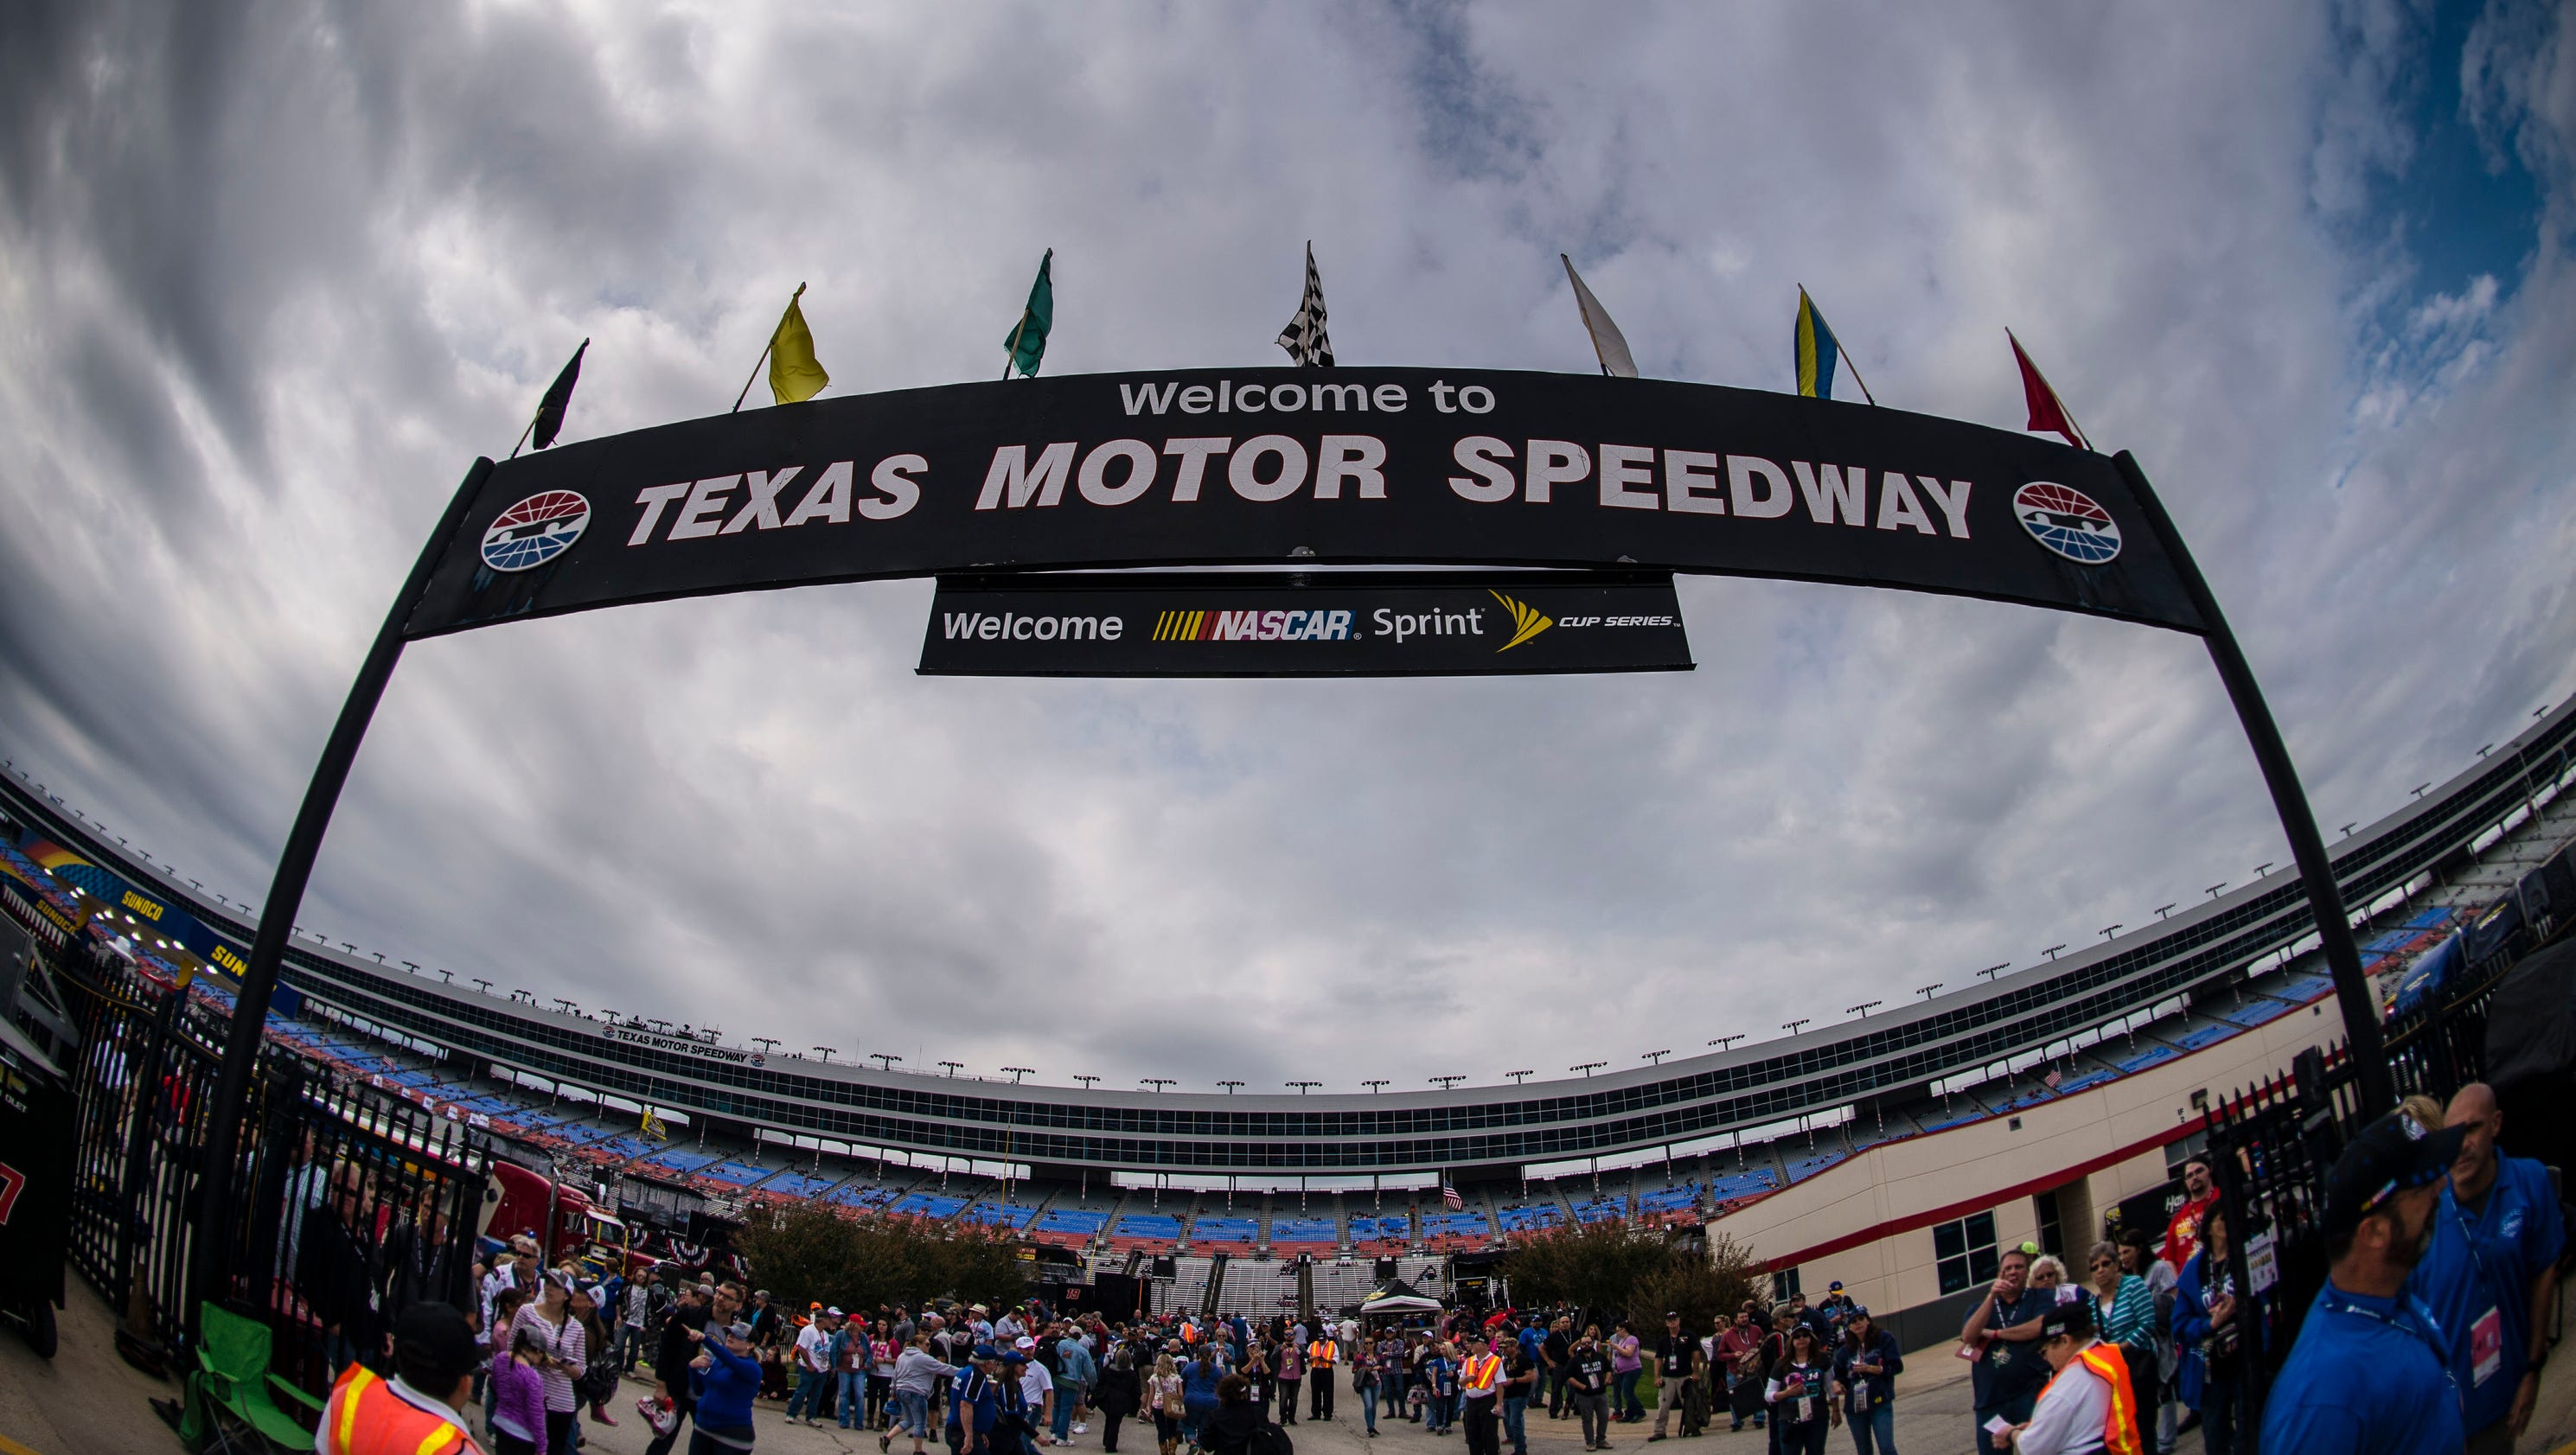 Texas motor speedway to repave 39 reprofile 39 1 5 mile track for Apartments near texas motor speedway